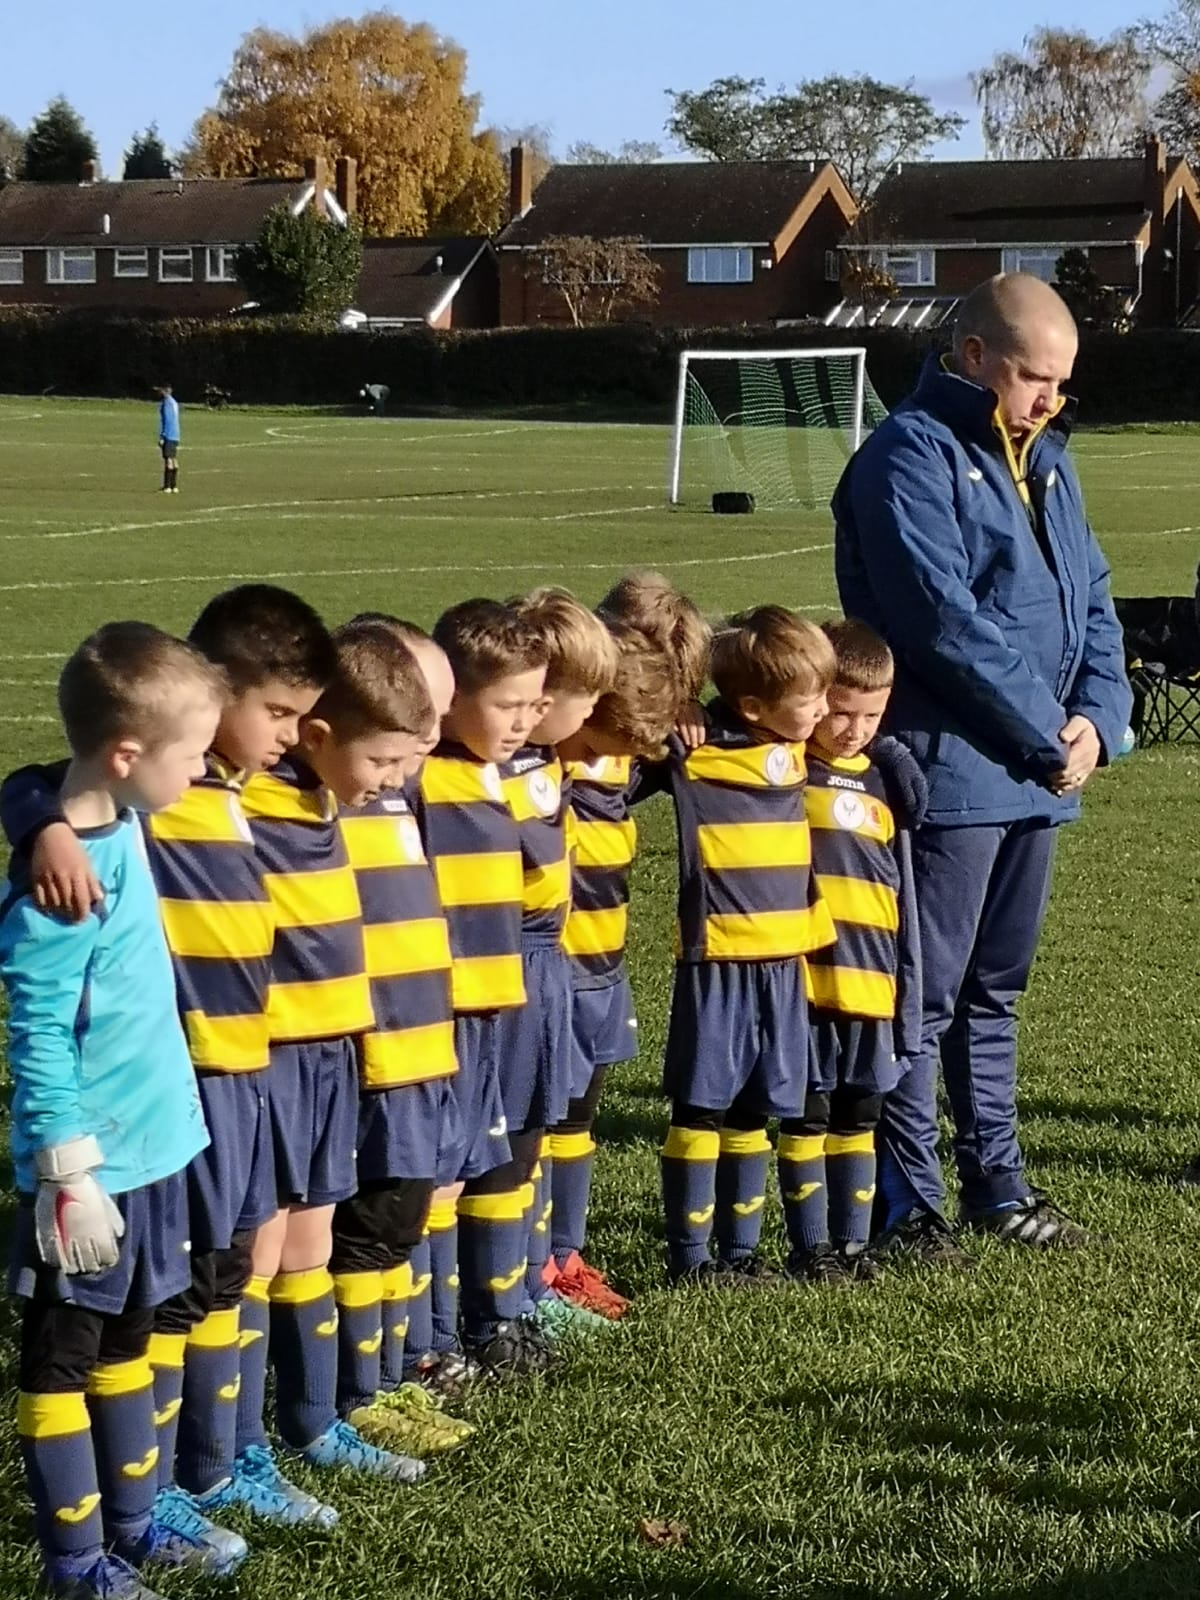 Colron Yellows meet Unbeaten Bromford